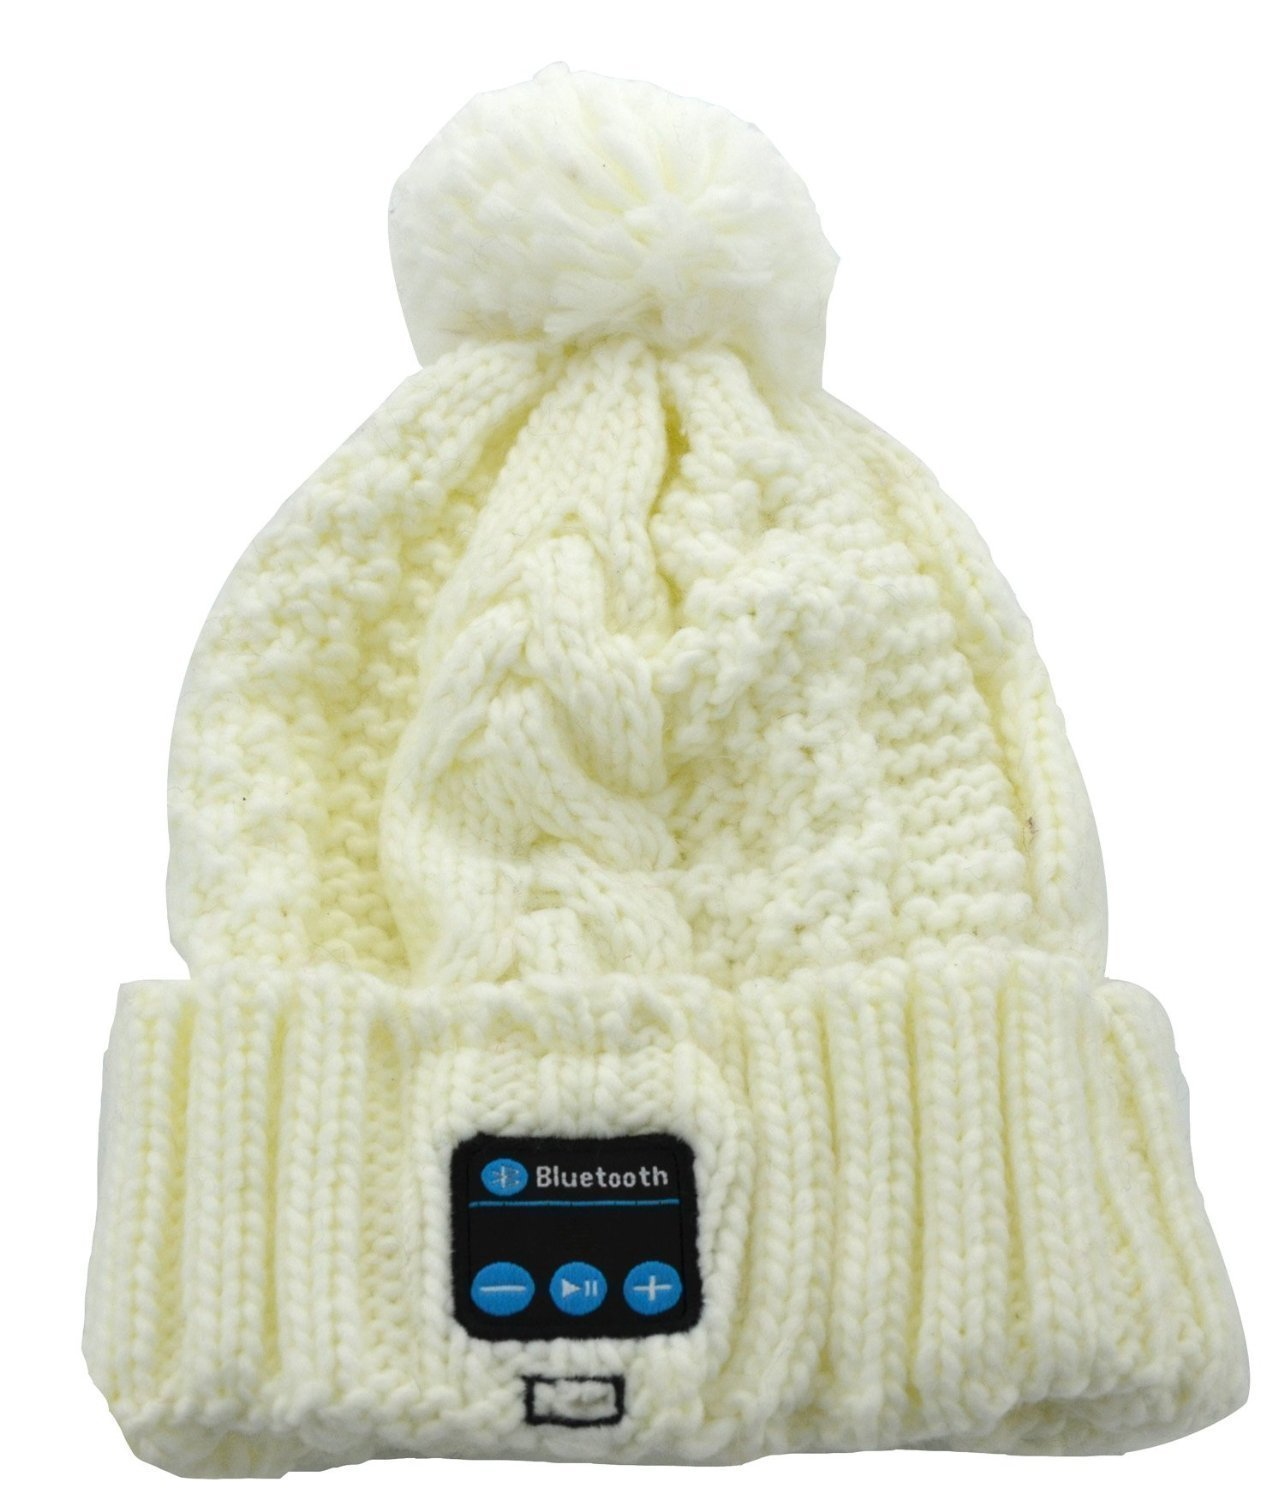 BearsFire® Wireless Bluetooth Music Hat Knitted Winter Hat Magic Hat Headphone Headset Earphones MP3 Speaker Music Player Hands-free Hat Women/Men Winter and Spring Warm Hats Beanie Hat (White)